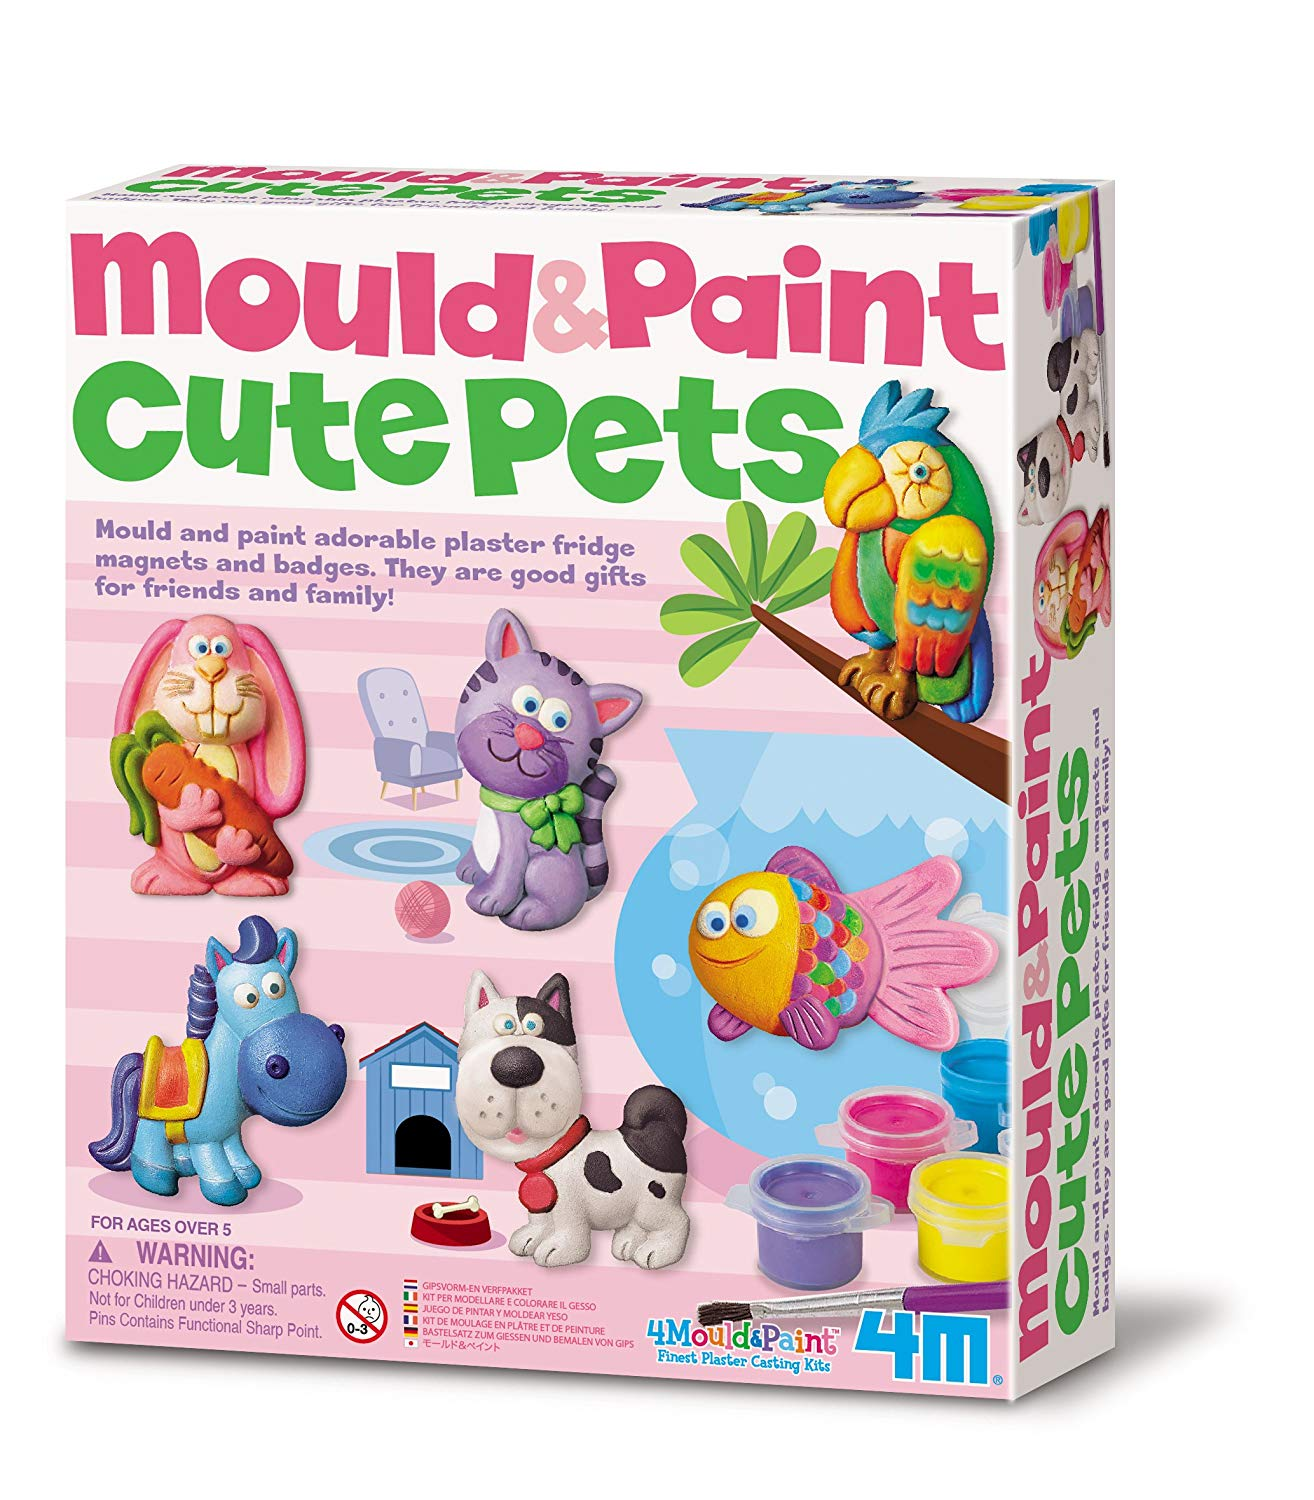 Mould & Paint - Cute Pets